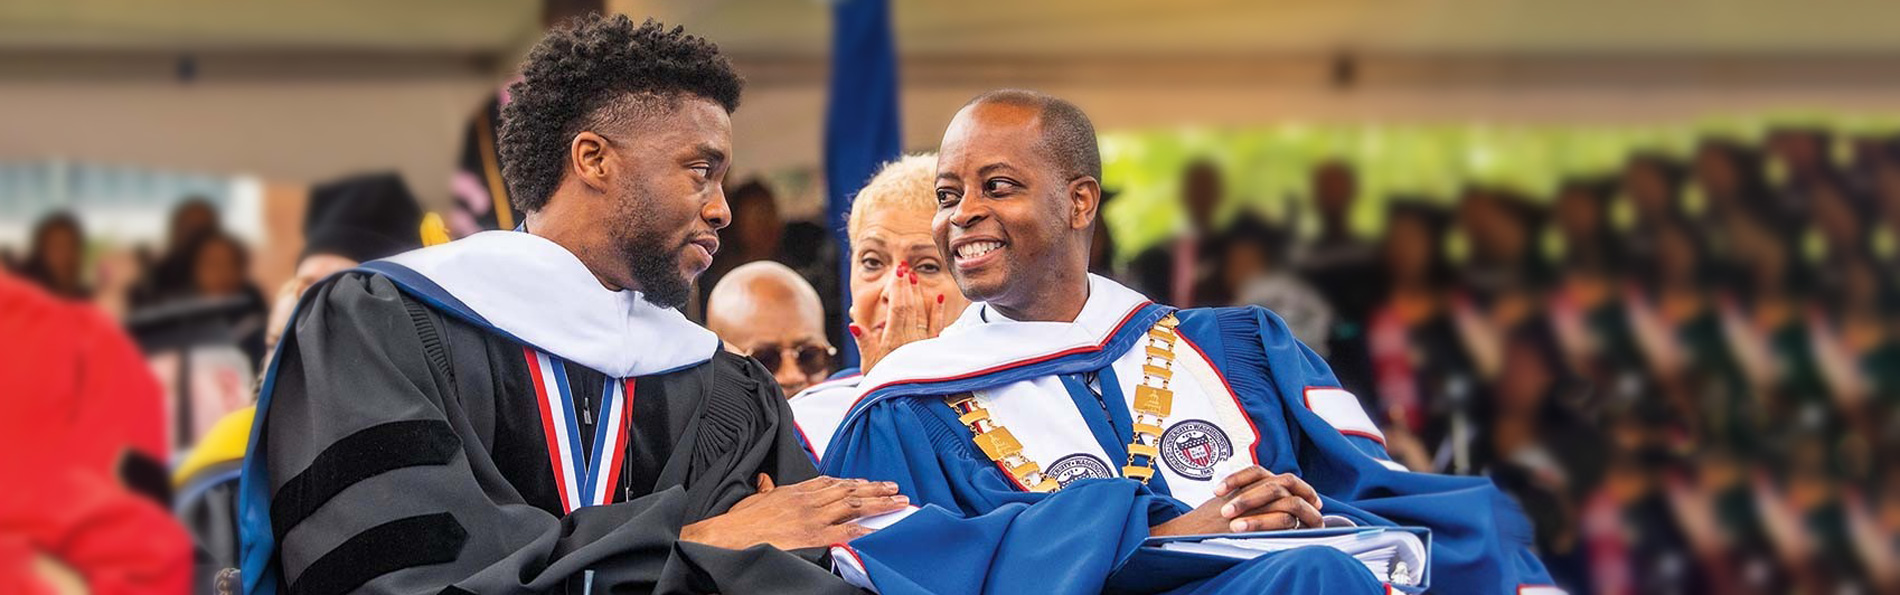 Chadwick Boseman talks to university president in graduation gown